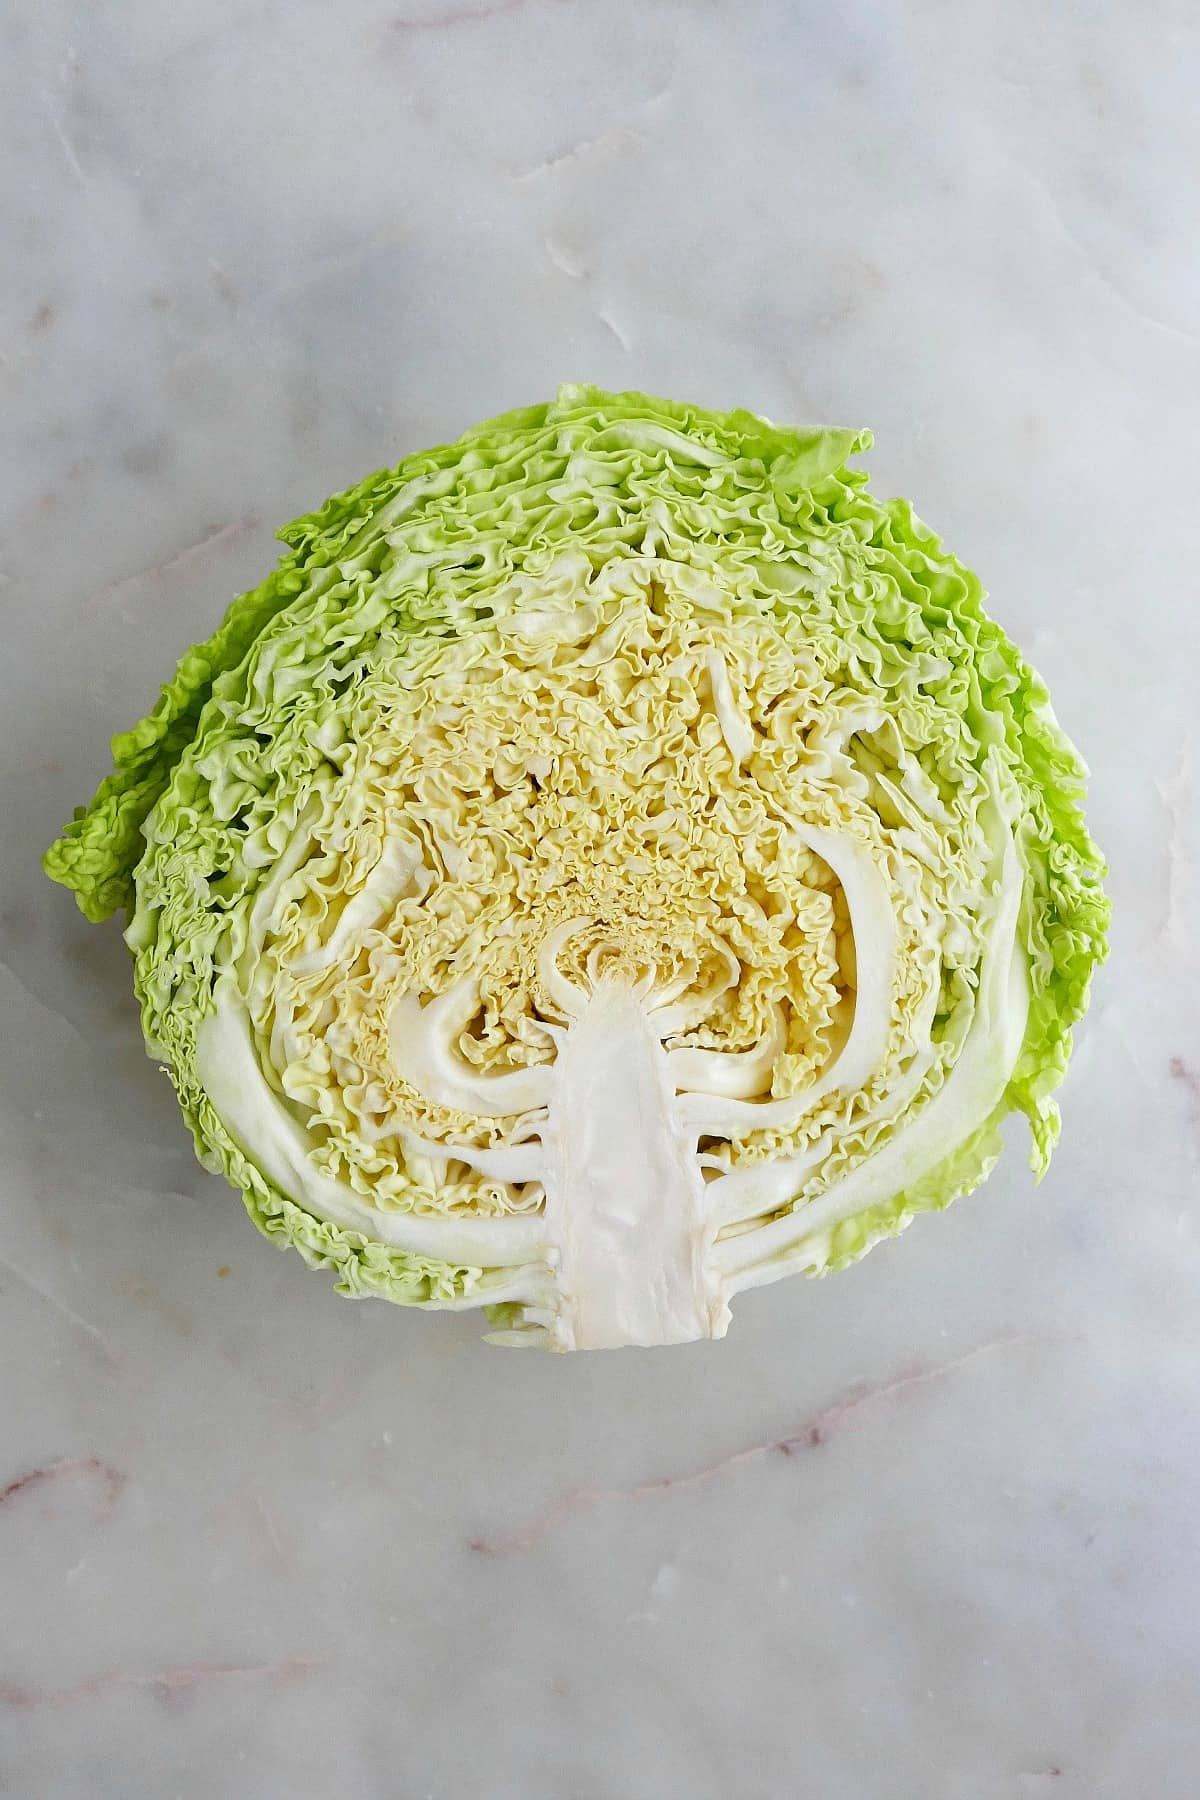 half of a head of savoy cabbage cut side up on a counter